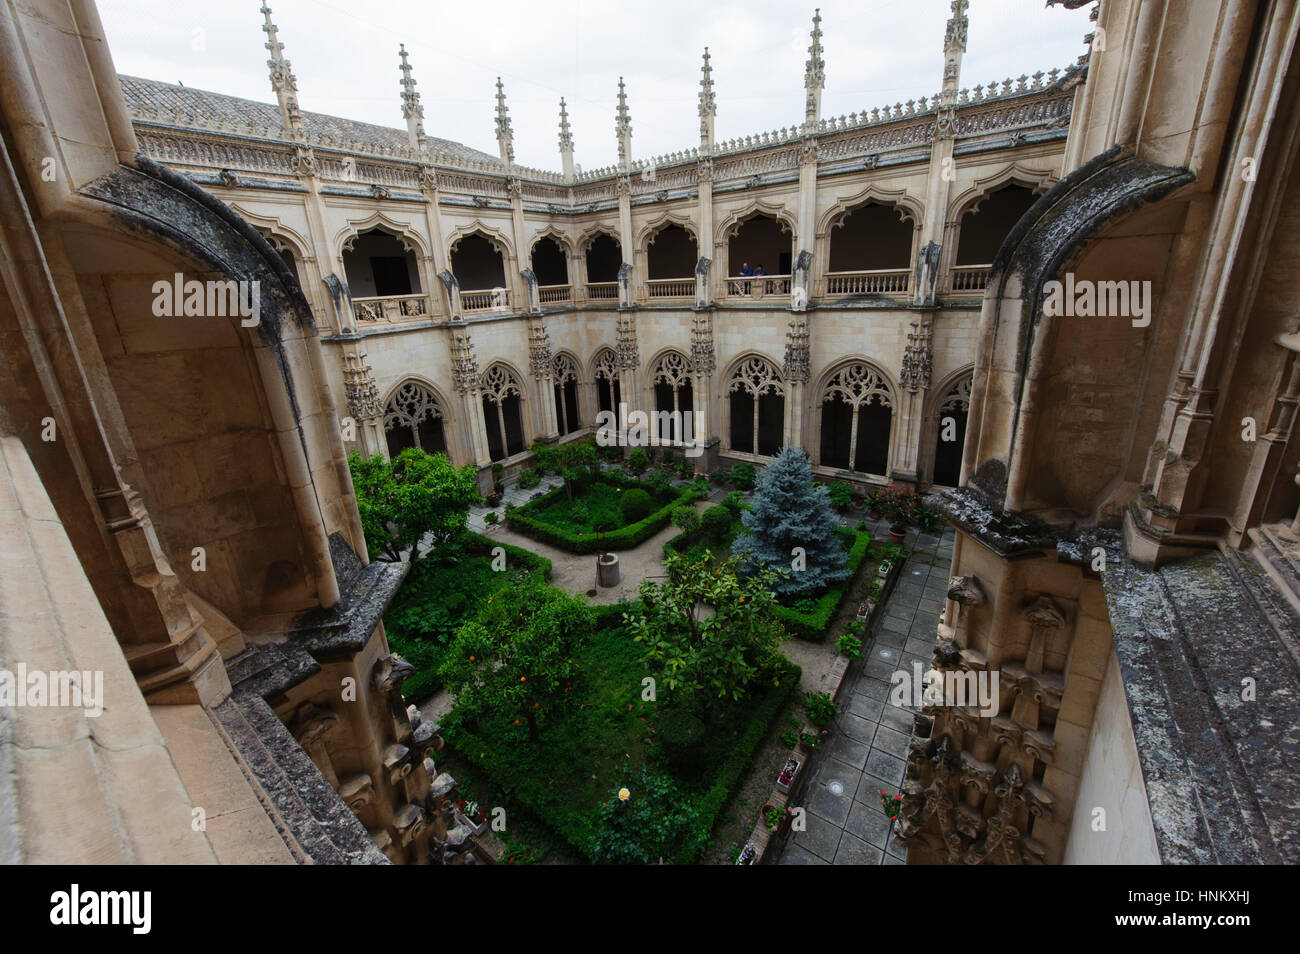 Toledo , Spain.The Monastery of San Juan de los Reyes. The cloister - Stock Image